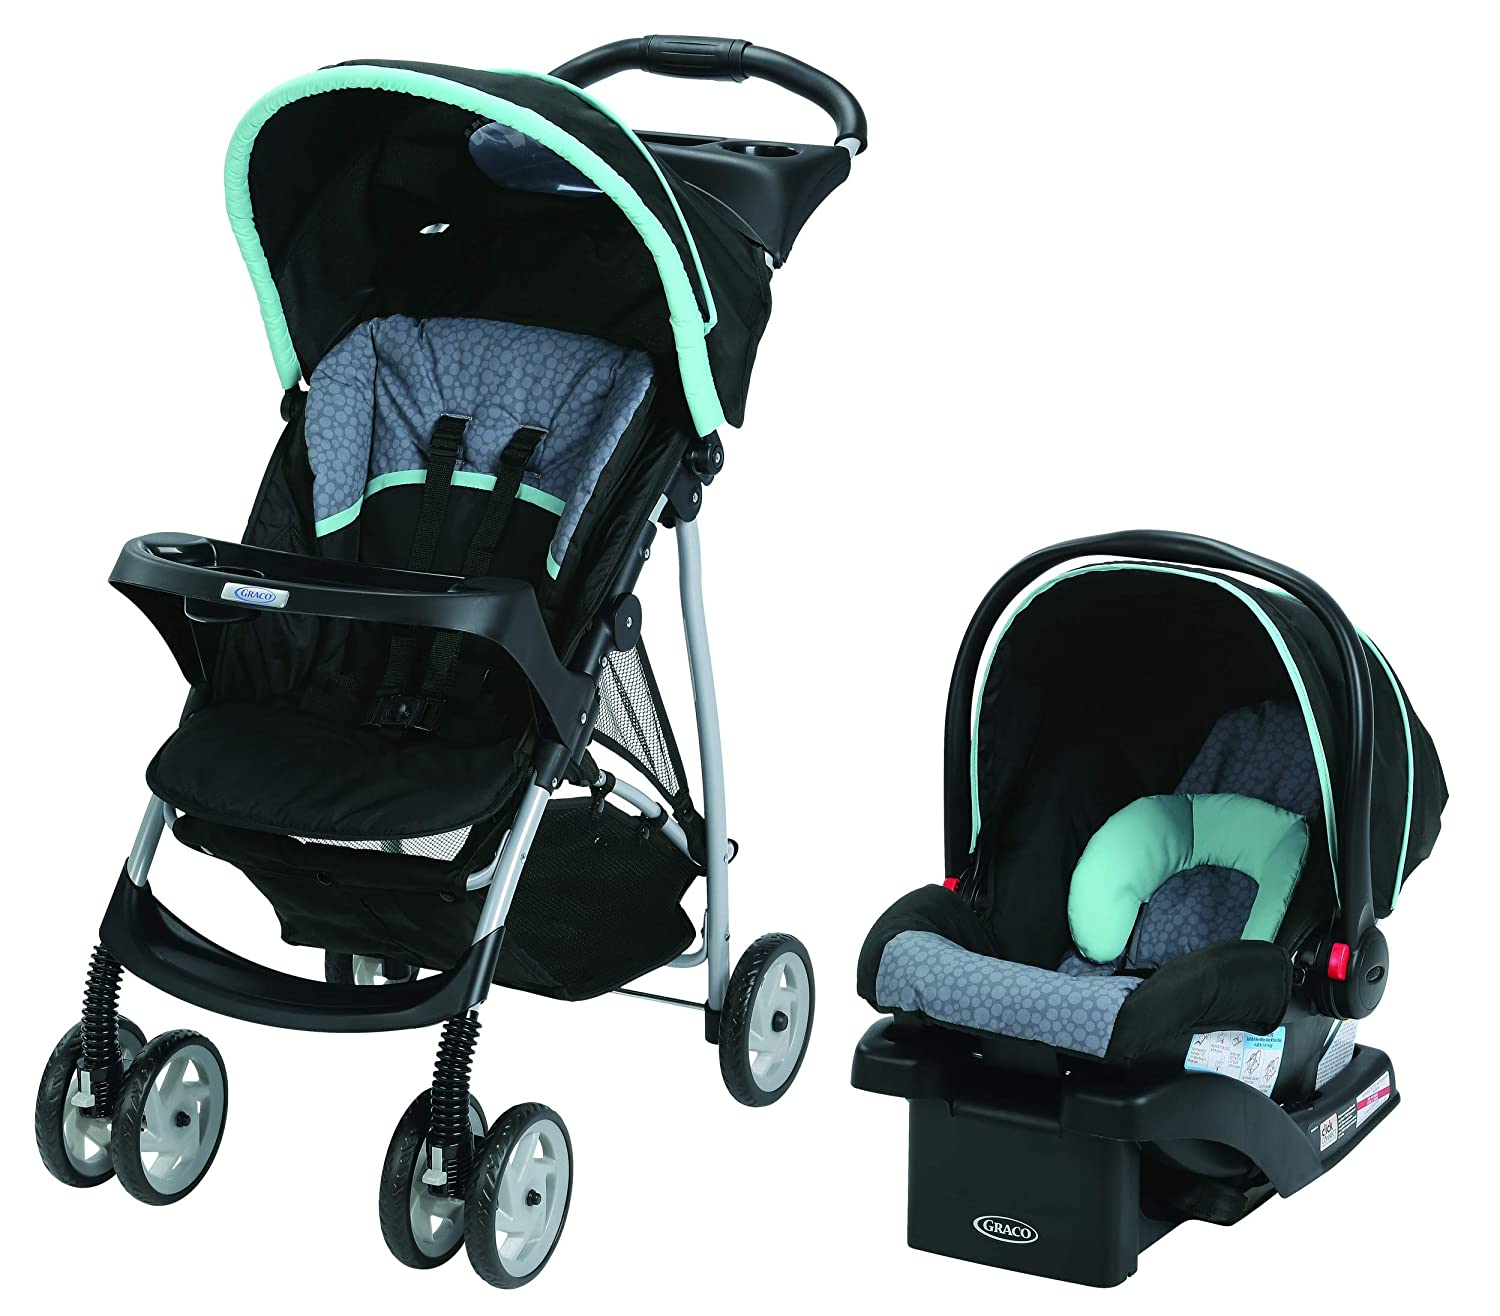 Top 5 Best Infant Travel Systems Reviews in 2021 5